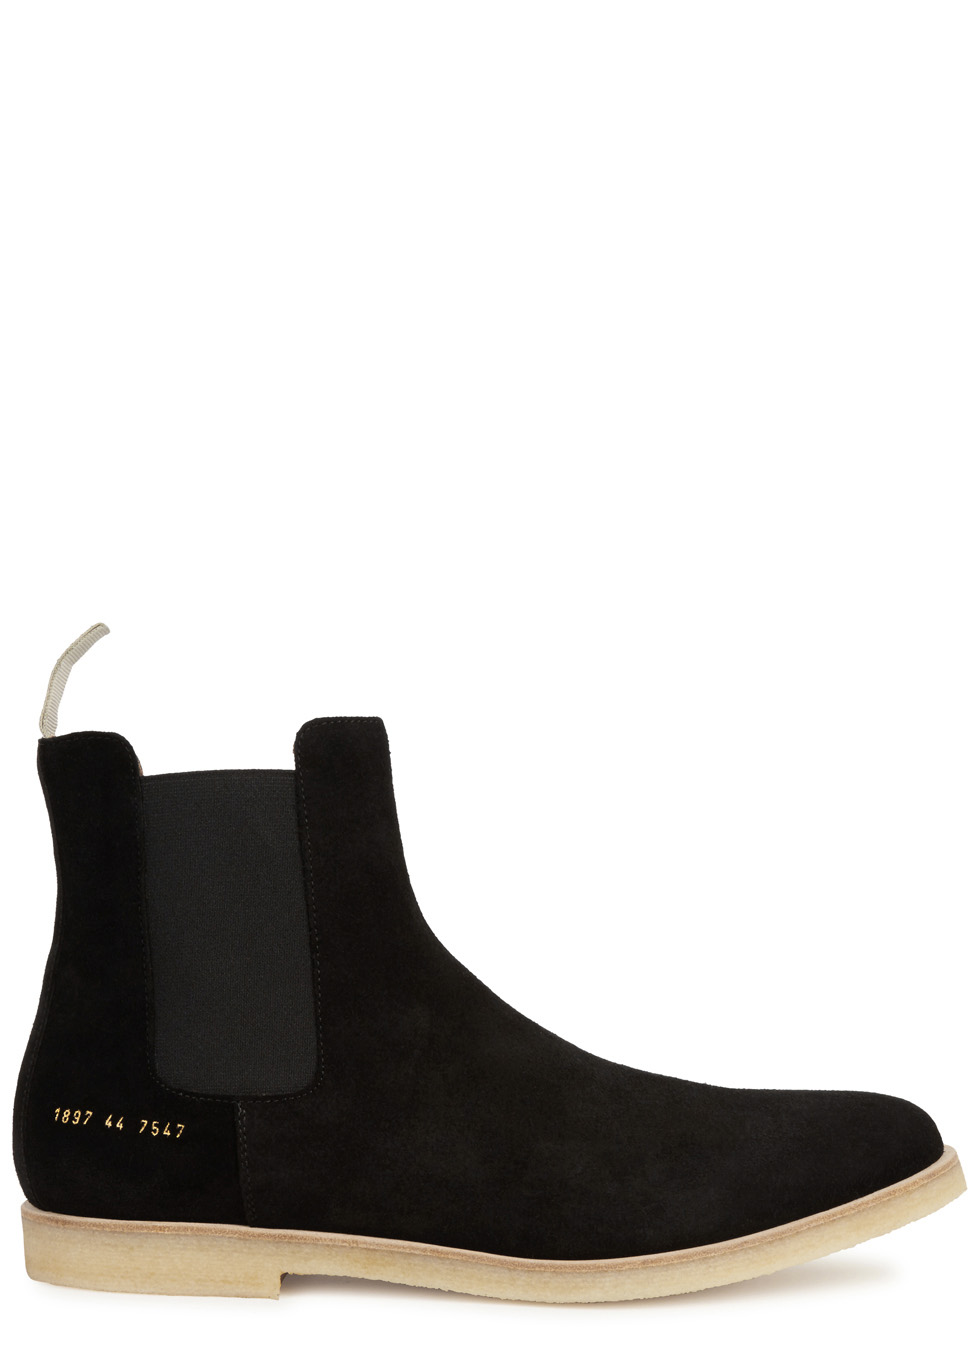 Stone brushed suede Chelsea boots